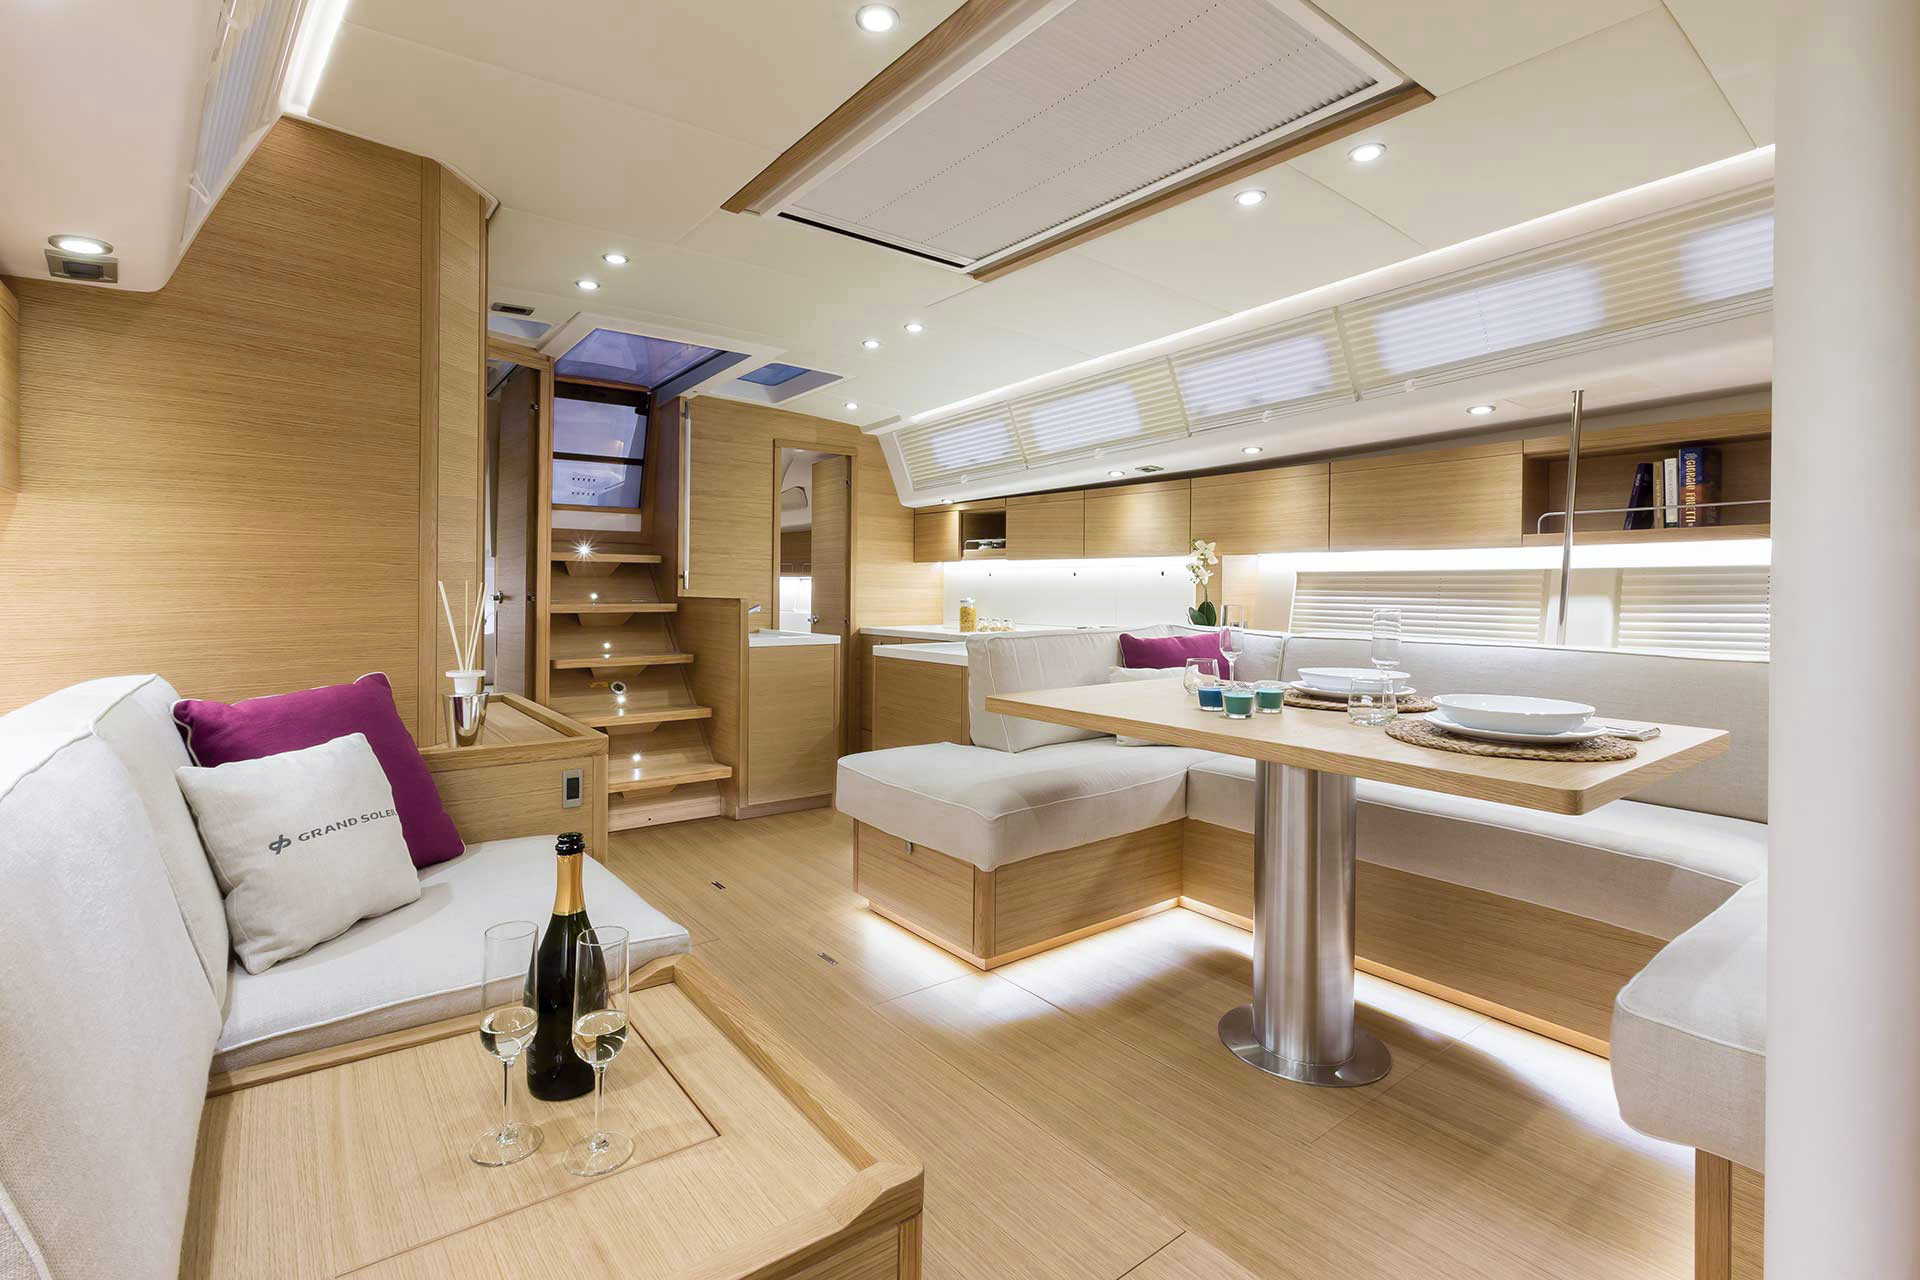 Grand_Soleil-Long_Cruise_46-California_Yacht_Imports-interior-lc462